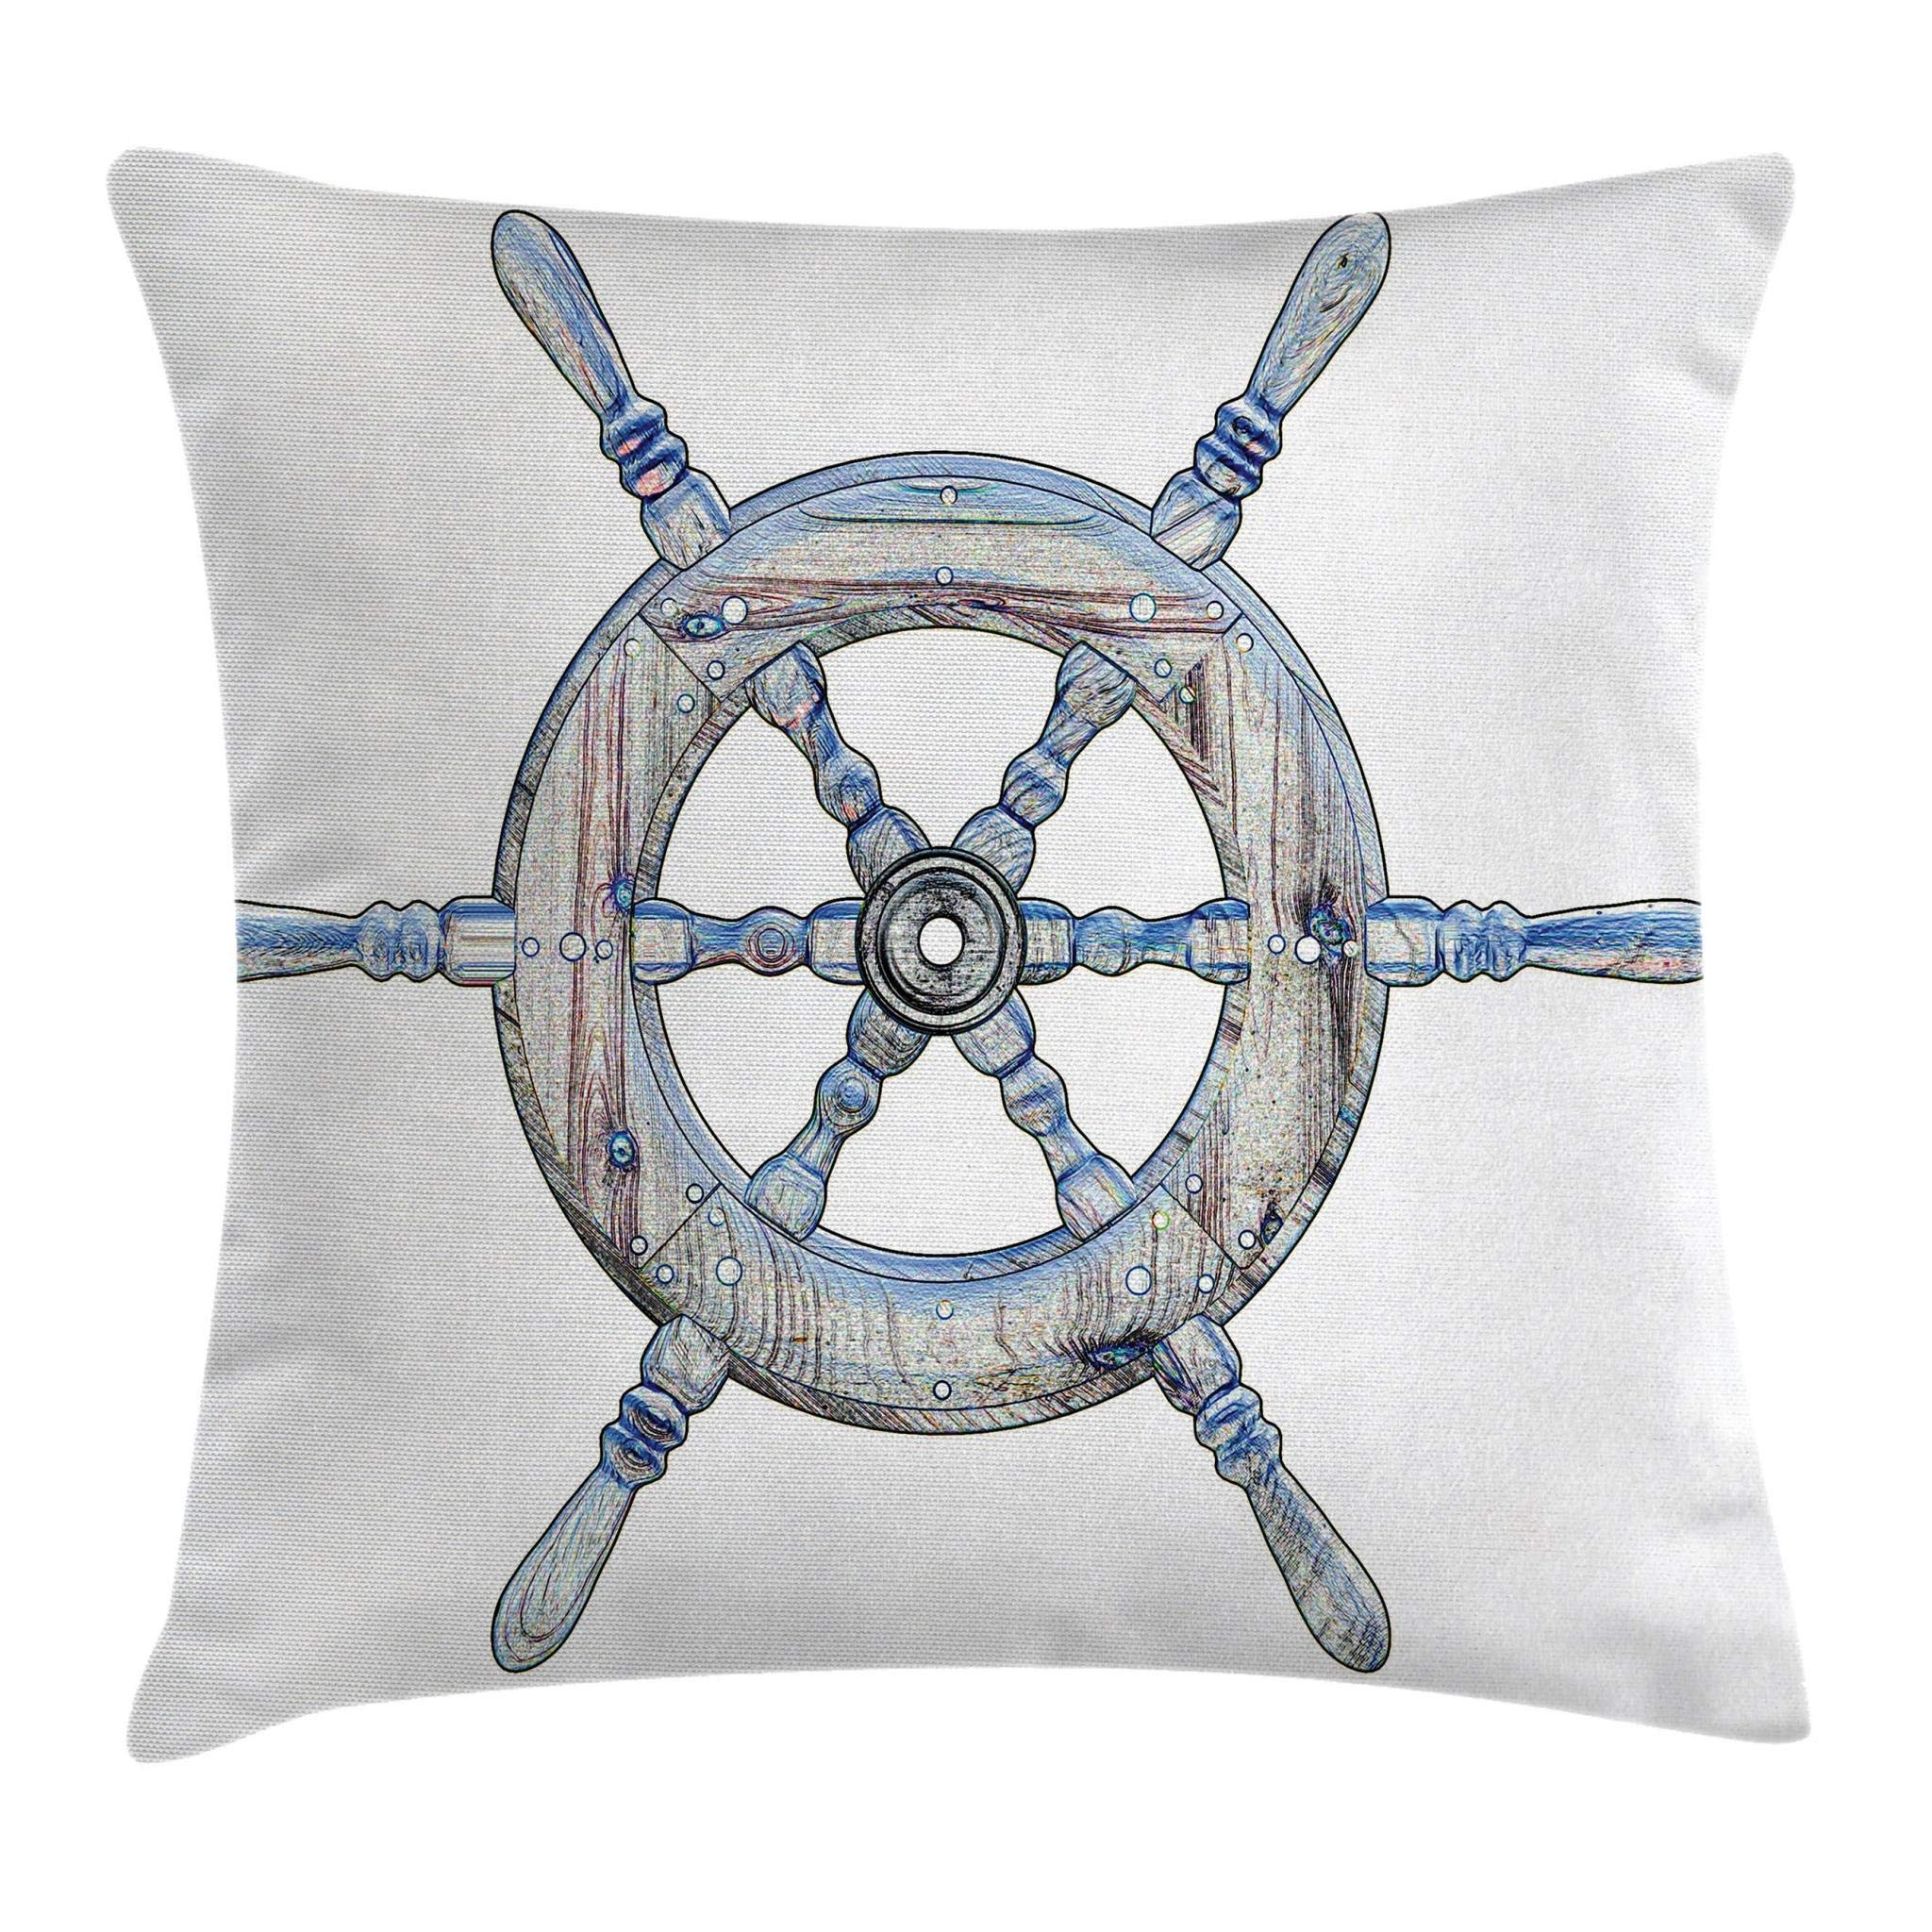 Ambesonne Nautical Decor Throw Pillow Cushion Cover, Illustration Wooden Ship Wheel White Backdrop Sailing Exploring Ocean Theme, Decorative Square Accent Pillow Case, 16 X 16 Inches, Blue White